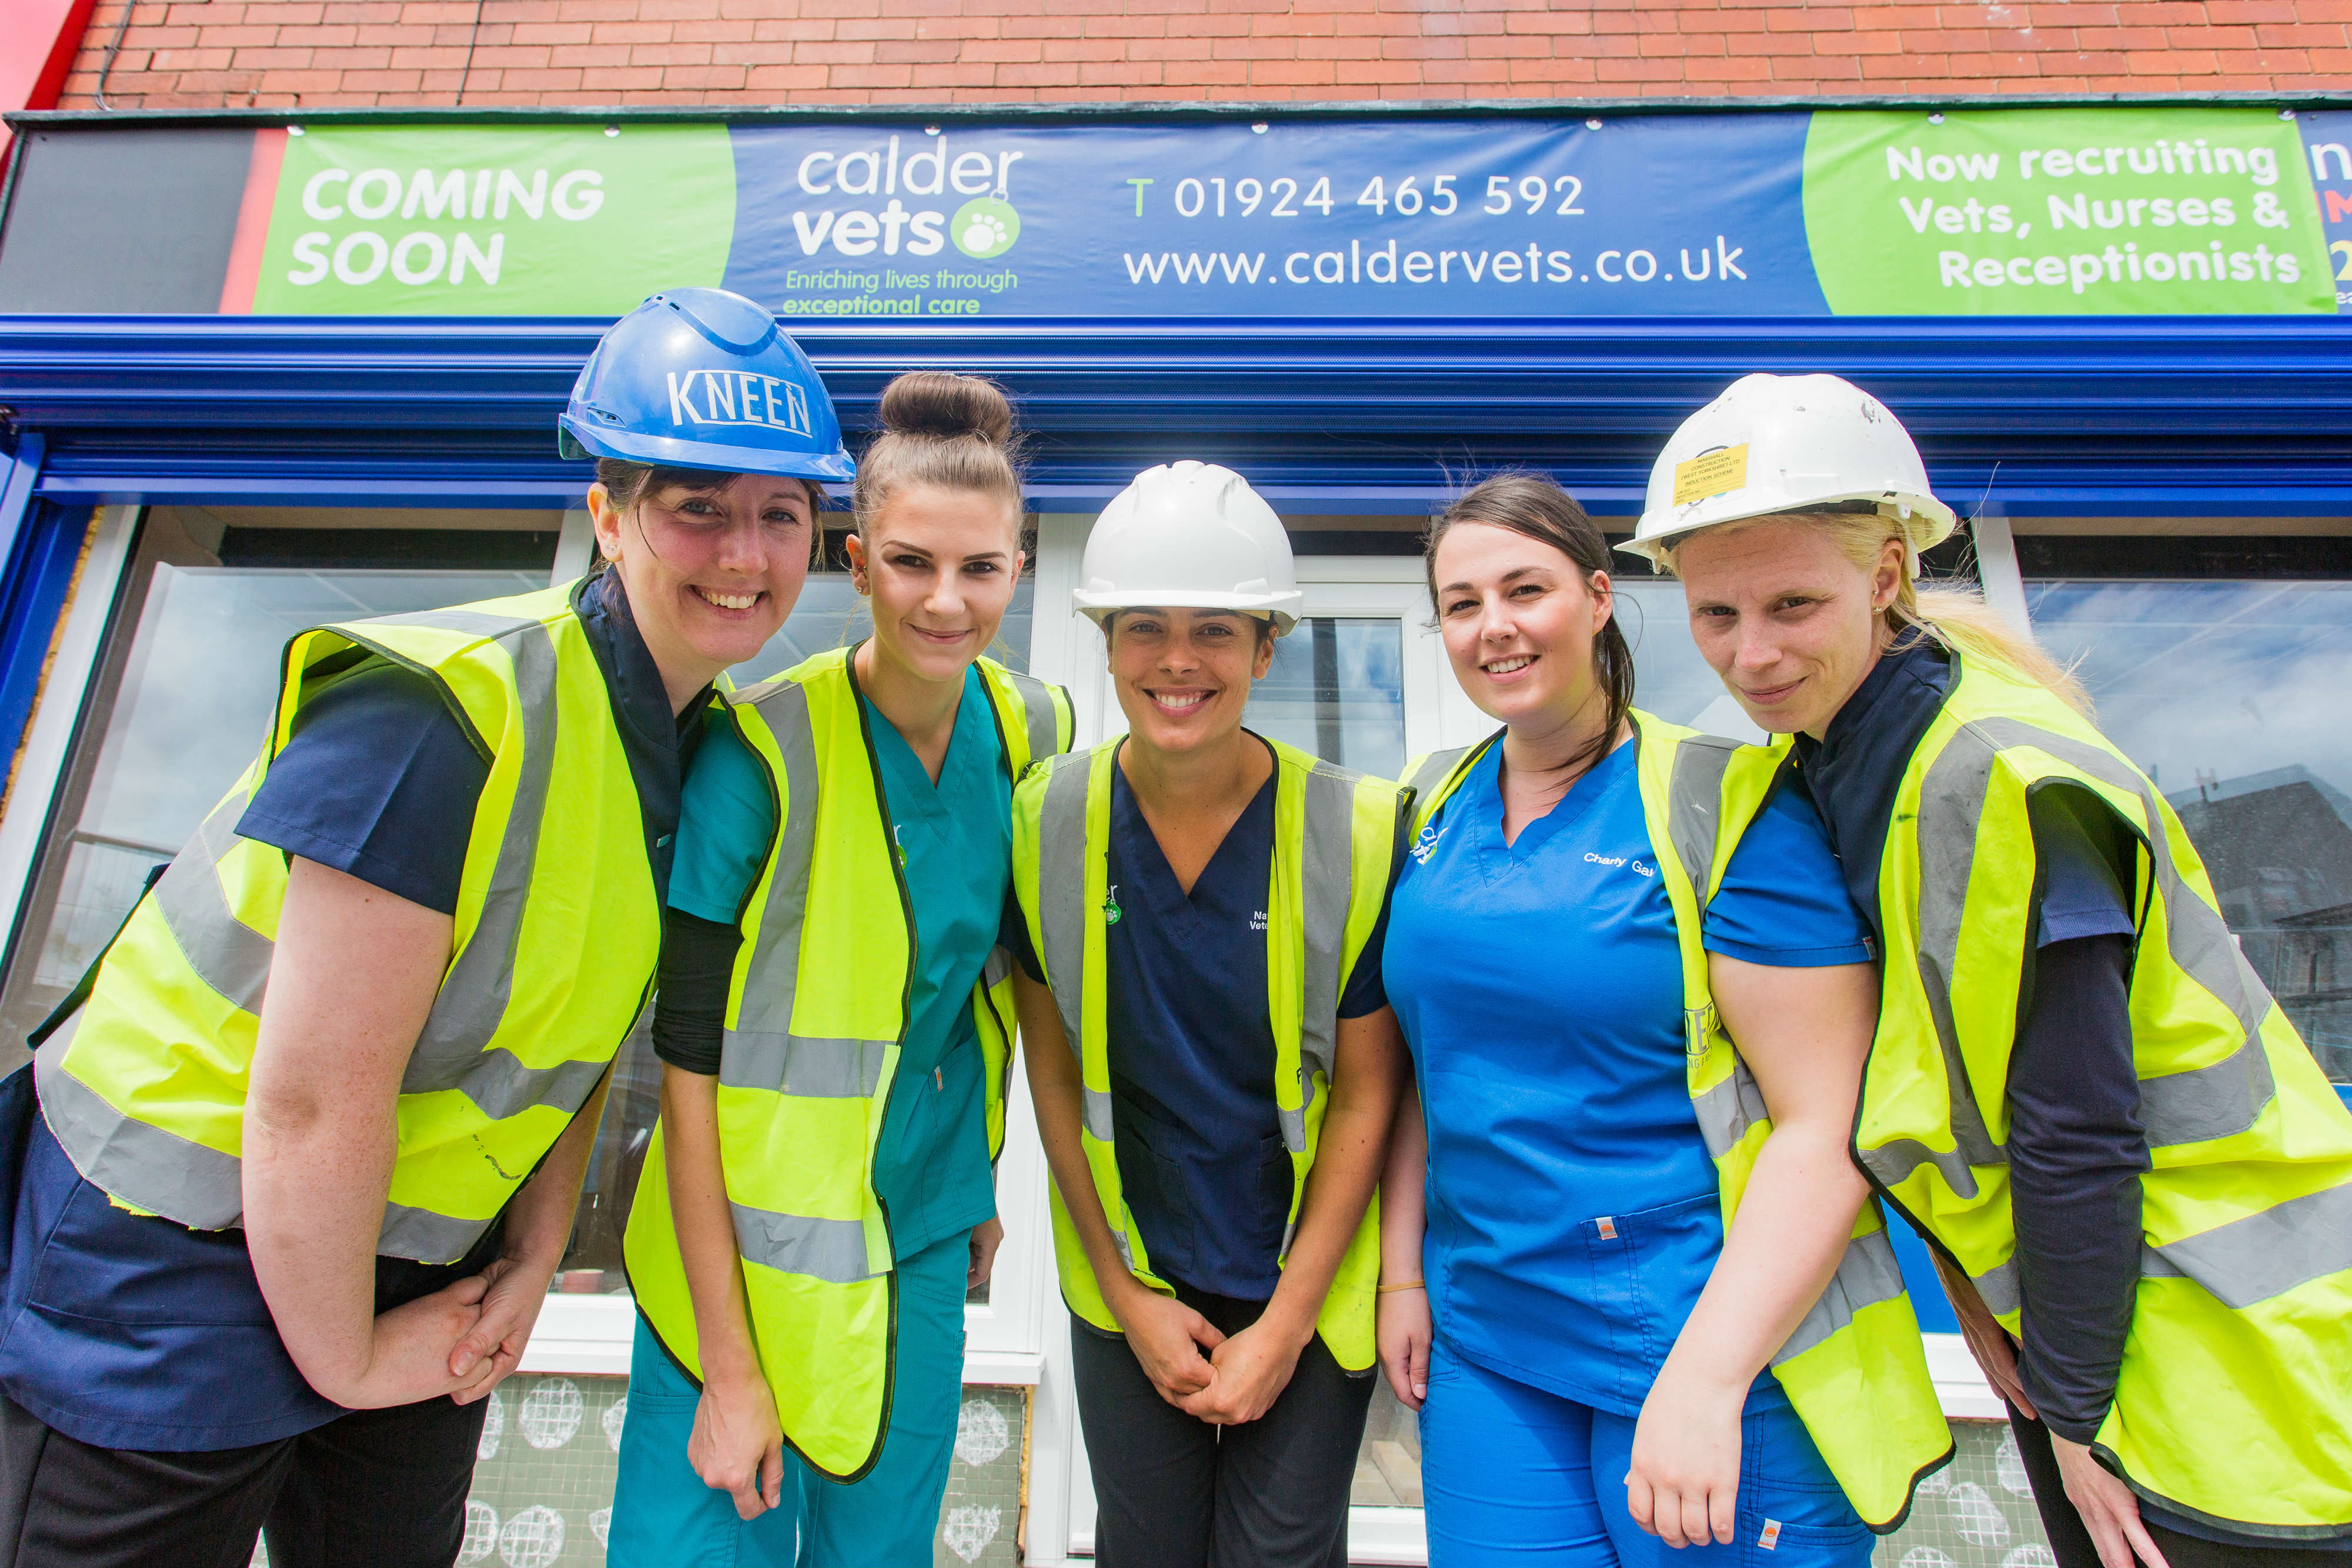 Yorkshire Dental Suite >> Five jobs created as Calder Vets invests £200,000 in new ...